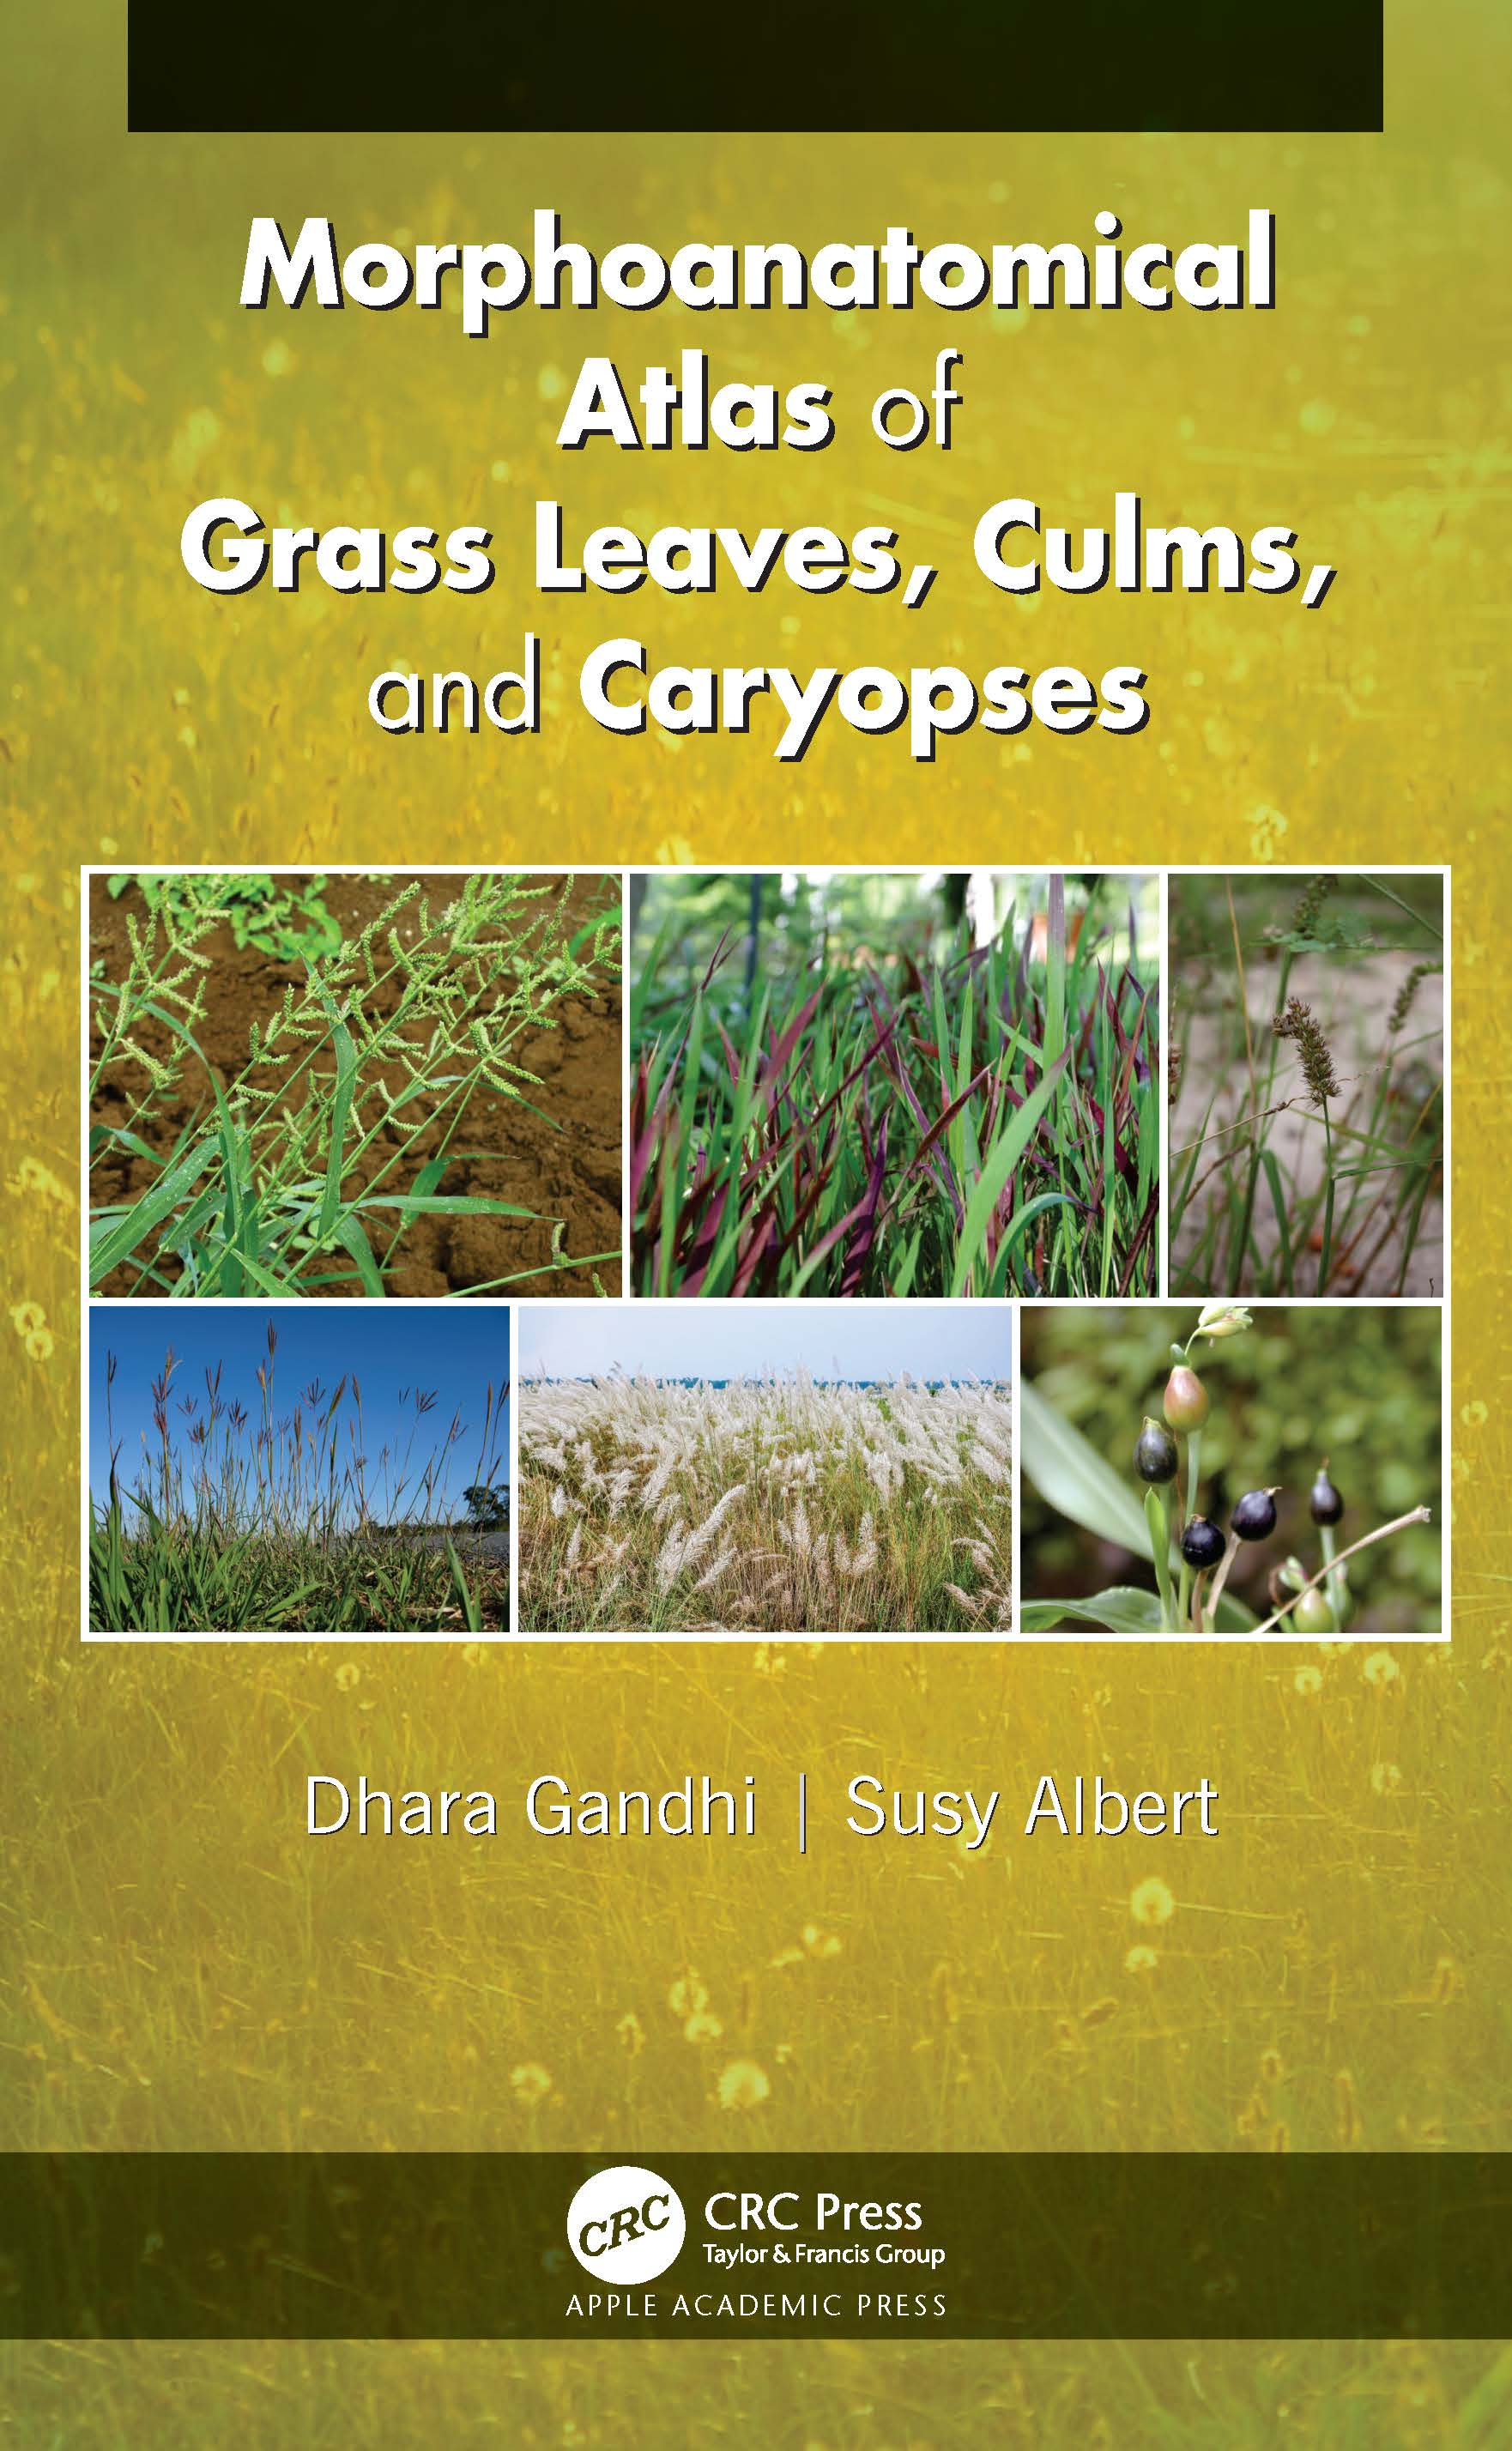 Morphoanatomical Atlas of Grass Leaves, Culms, and Caryopses book cover